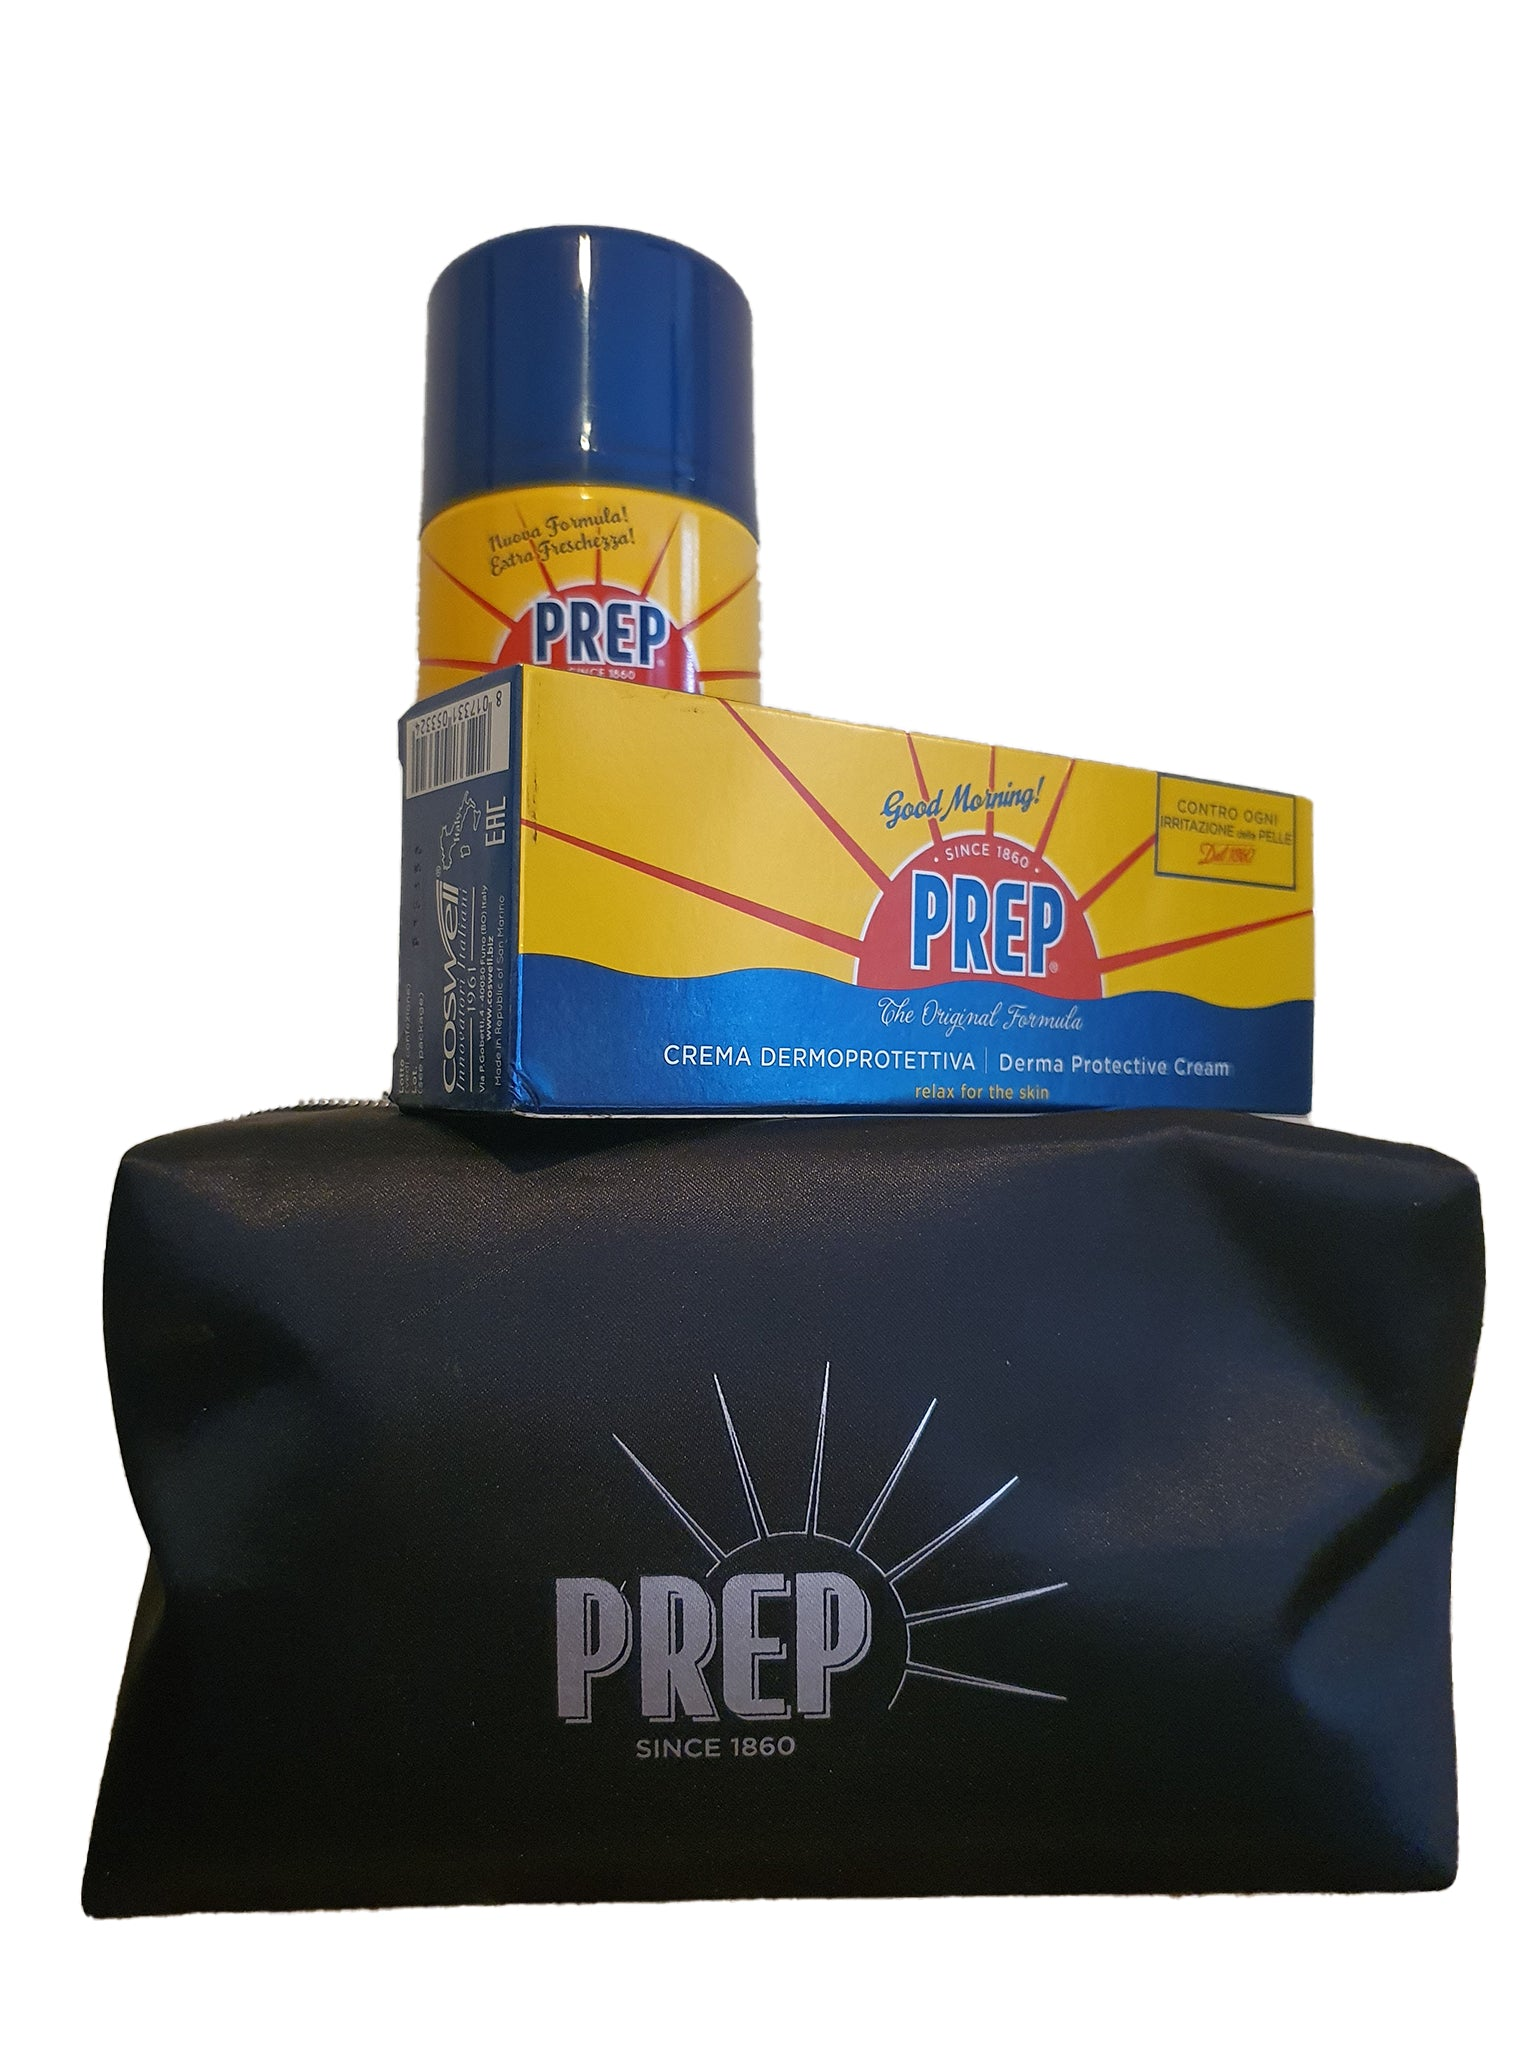 Prep, TOILETRY BAG  with SHAVING FOAM derma protective, 300ml and DERMA PROTECTIVE CREAM 75ml